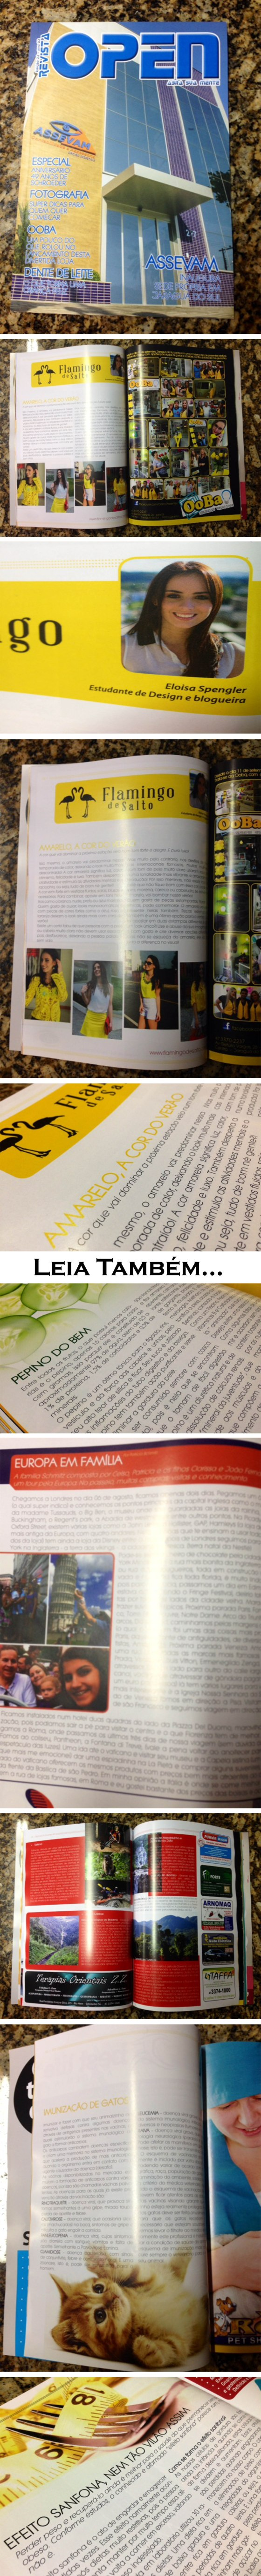 revistaoutubro